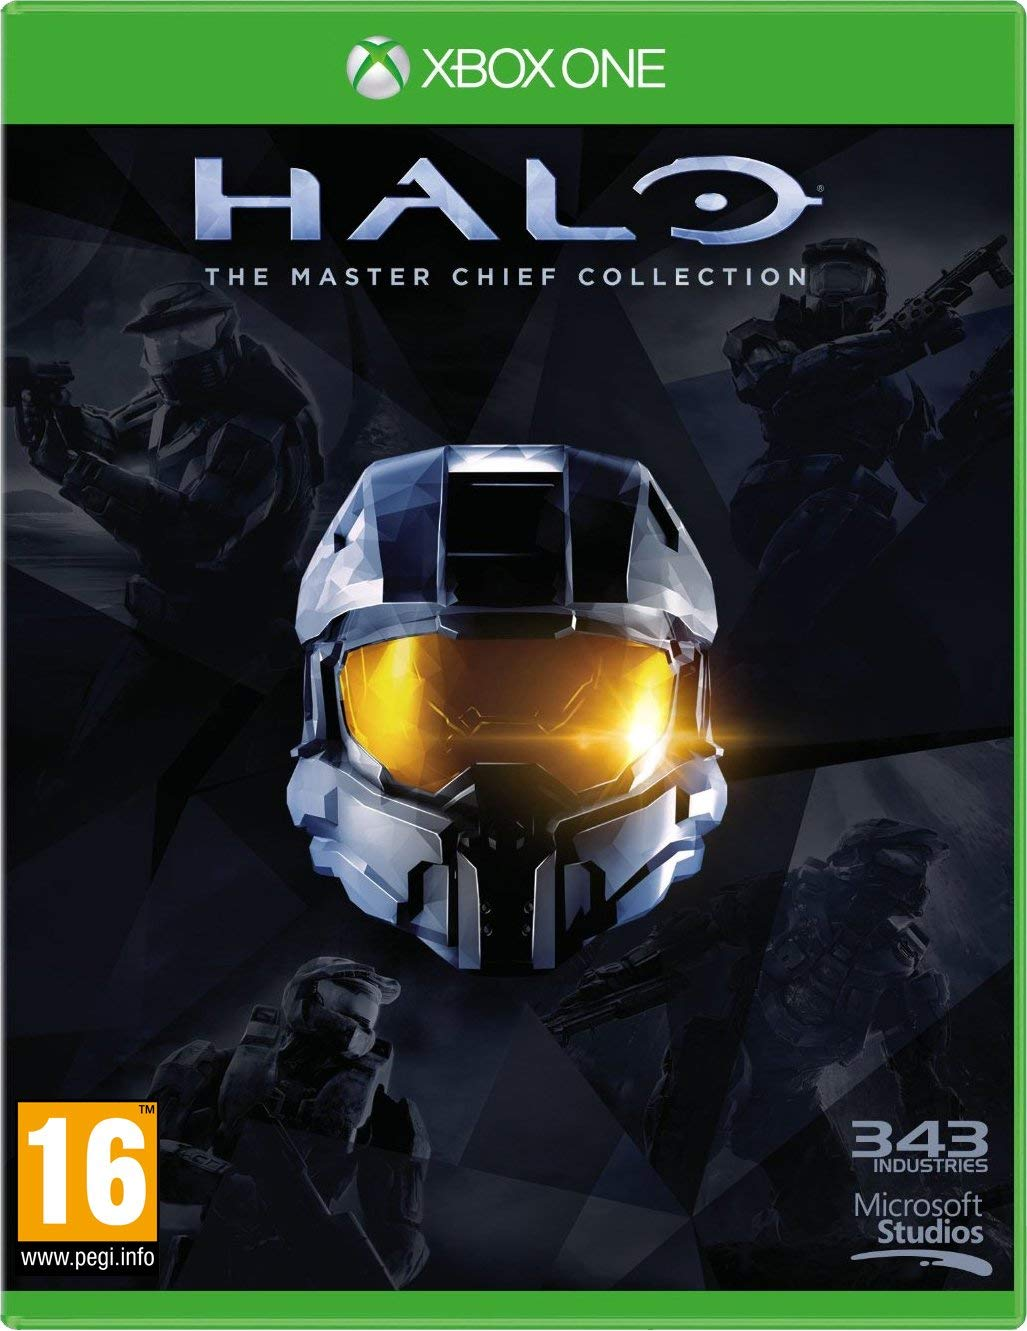 HALO: THE MASTER CHIEF COLLECTION - Xone